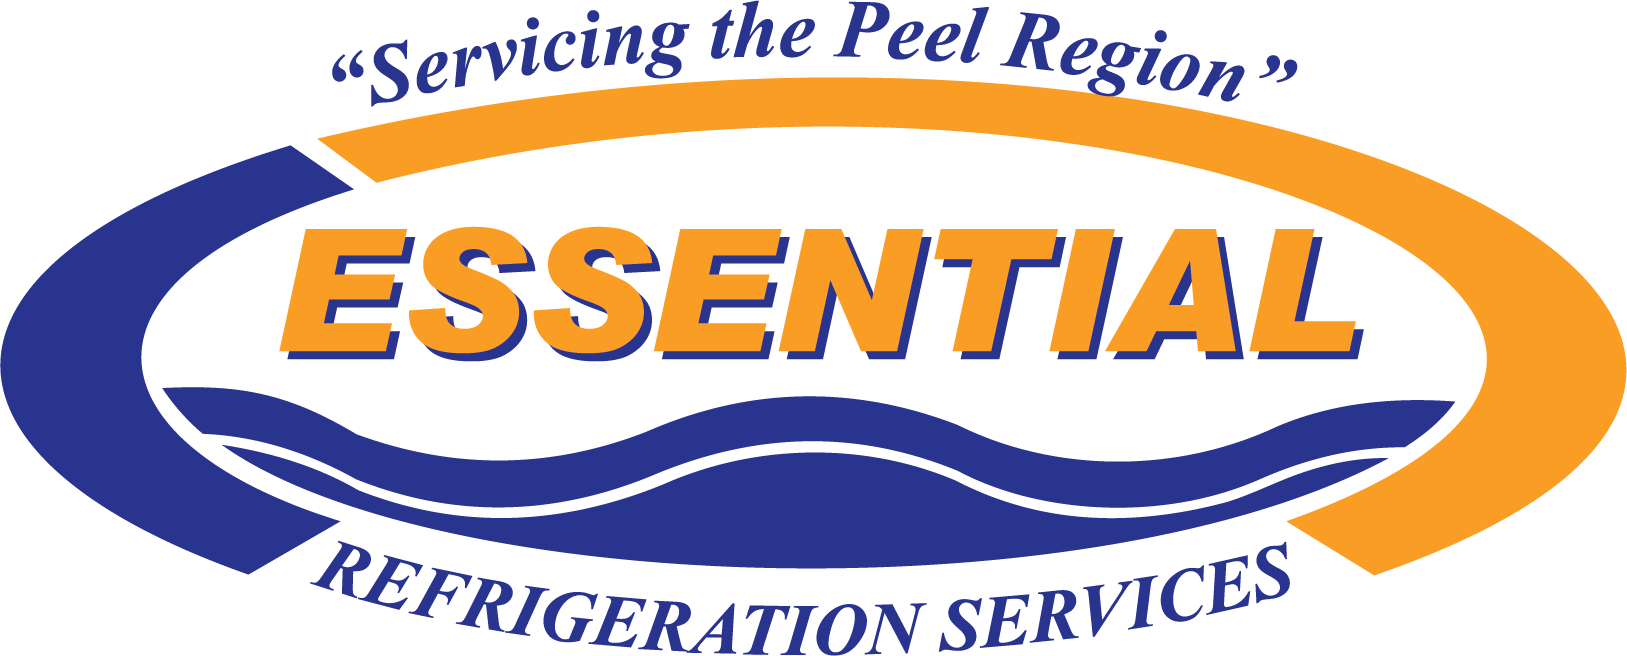 Essential Refrigeration Services